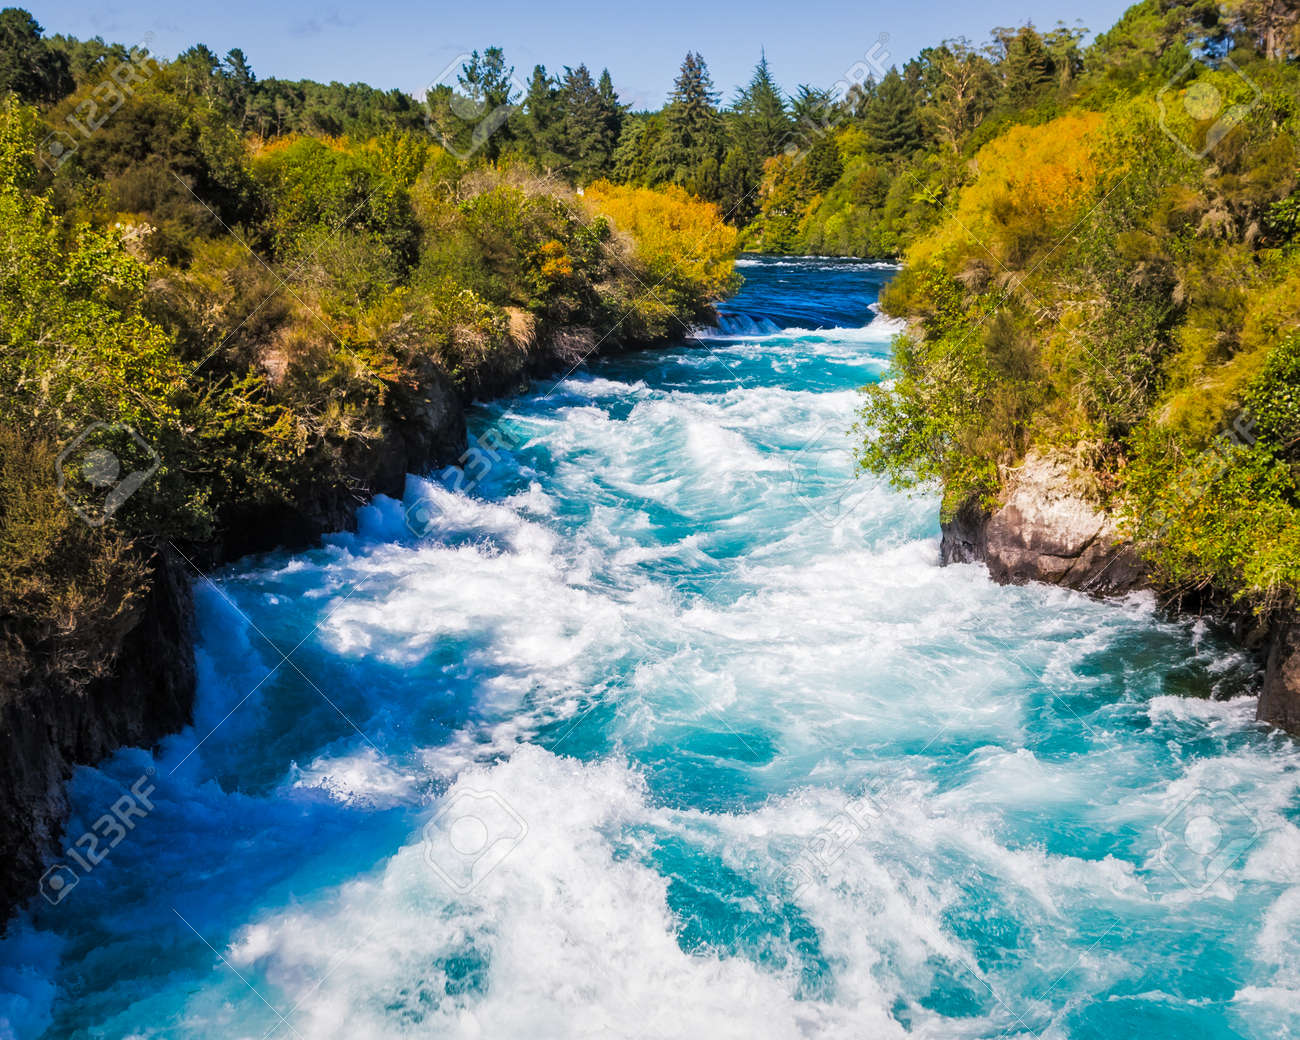 Powerful Huka Falls on the Waikato River near Taupo North Island New Zealand Stock Photo - 24883314